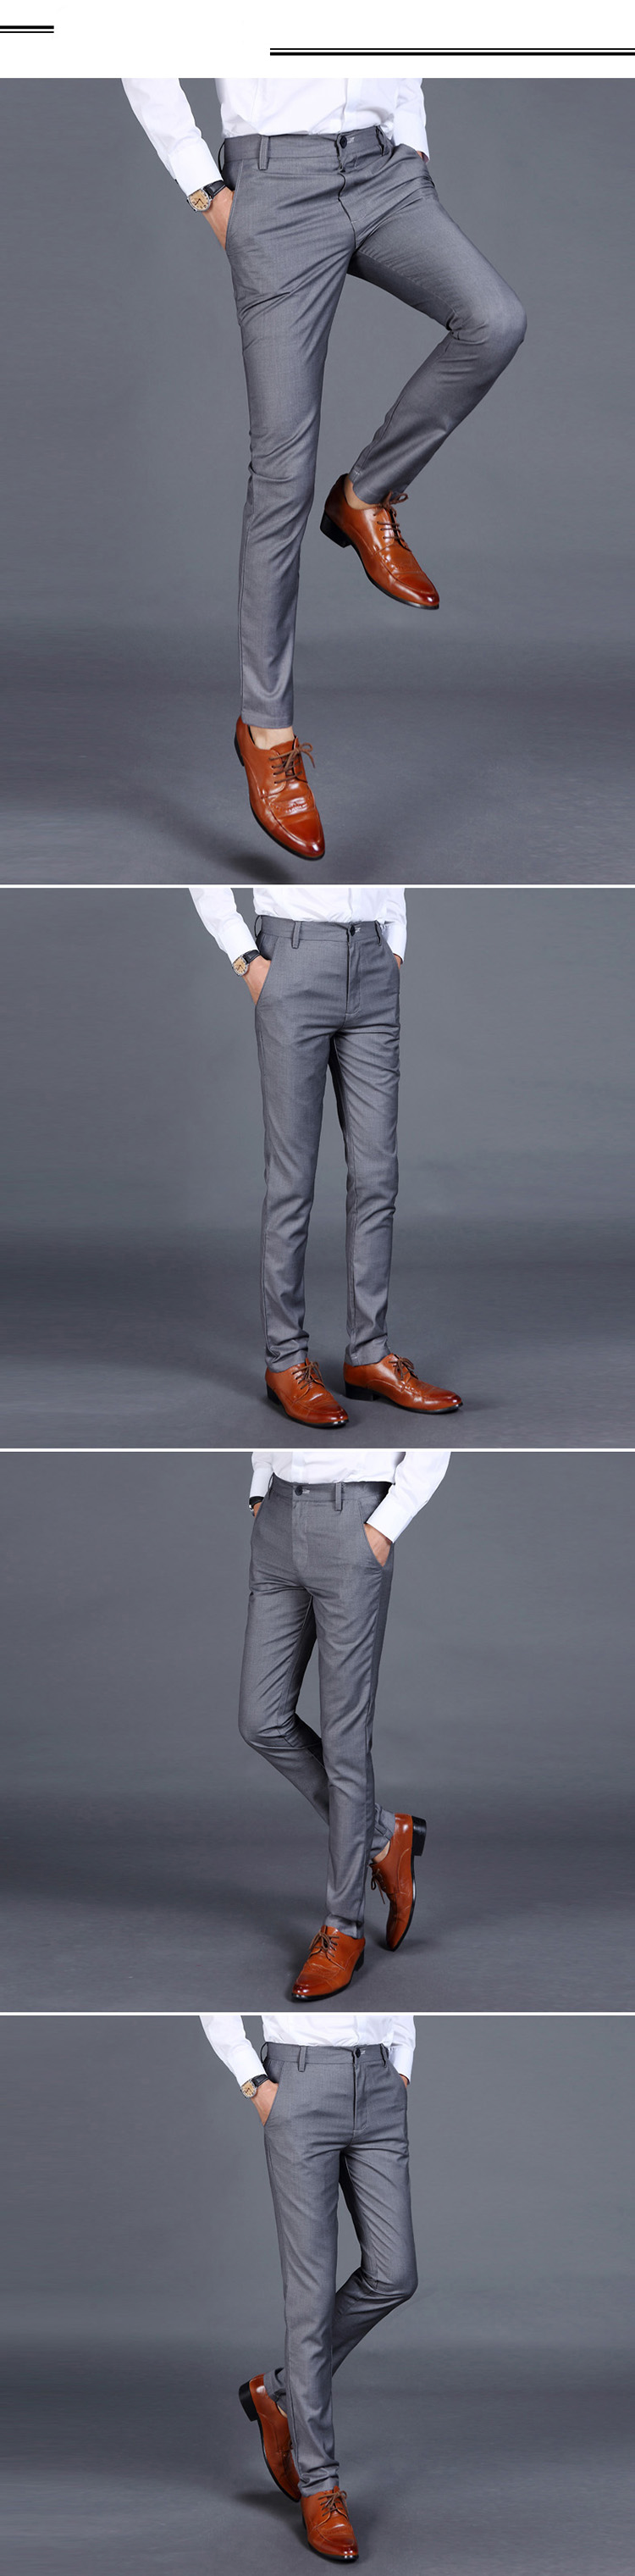 Hbc91bba8ecf1450c8e86b7d55f35cd7eu HCXY 2019 Summer Men's Smart Casual Pants Men Slim Straight Suit Pants Male Trousers Thin Smooth fabric Solid classic trousers